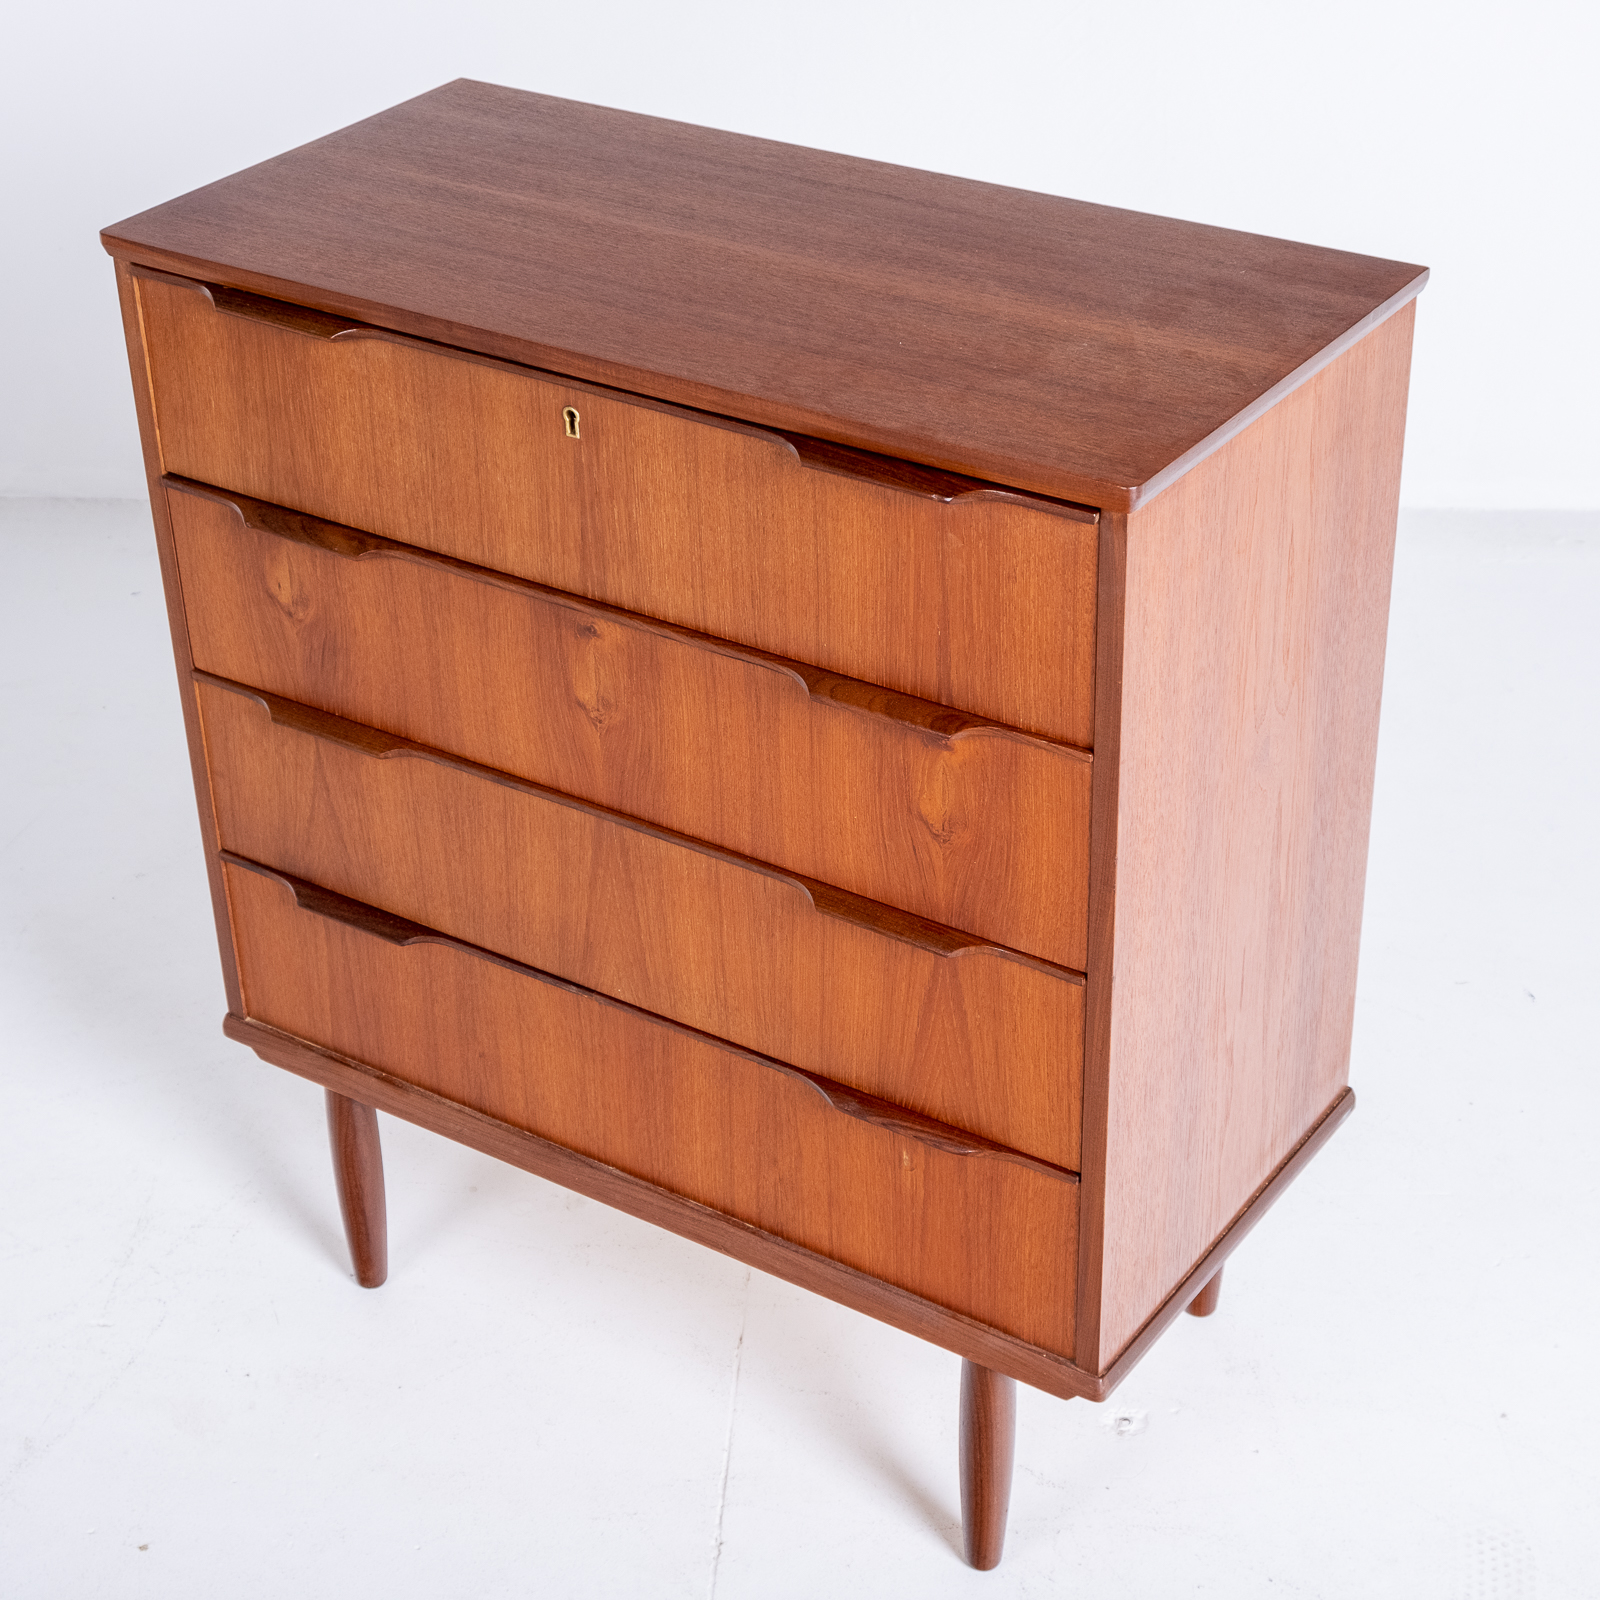 Chest Of Drawers In Teak, 1960s, Denmark5